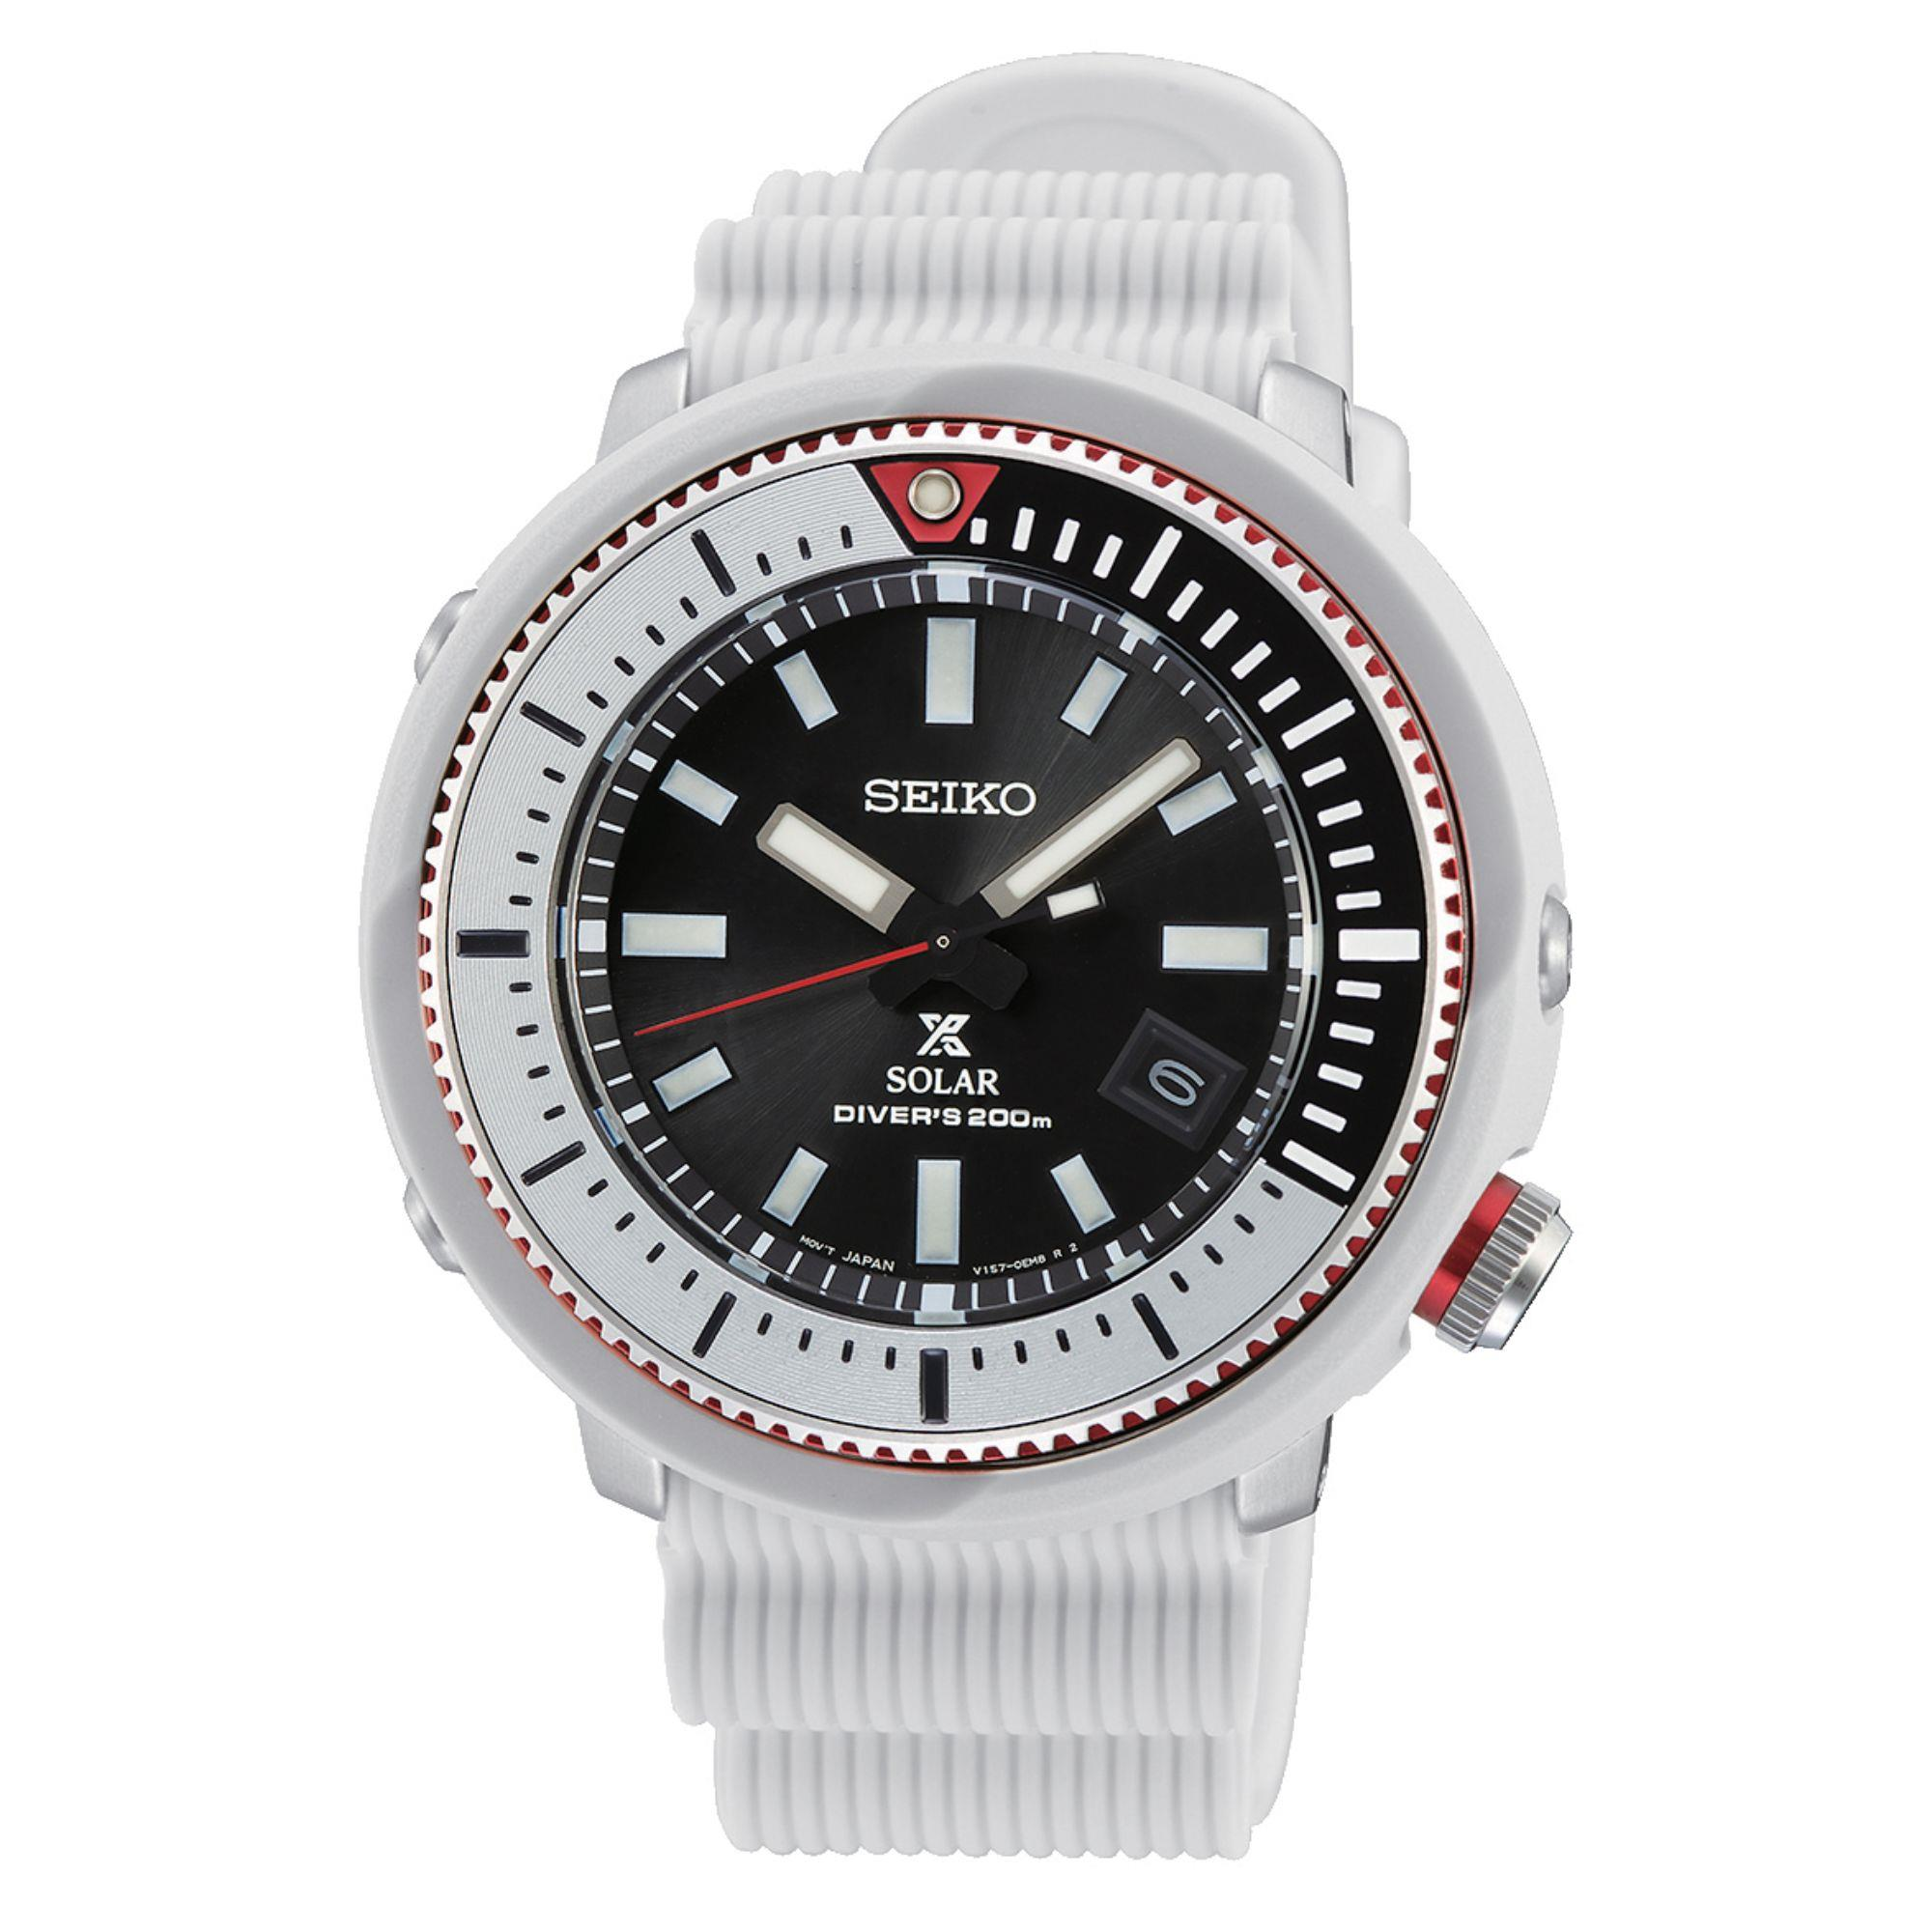 Seiko Prospex Street Series 'Tuna' Solar Black Dial White Silicone Strap Men's Watch SNE545P1